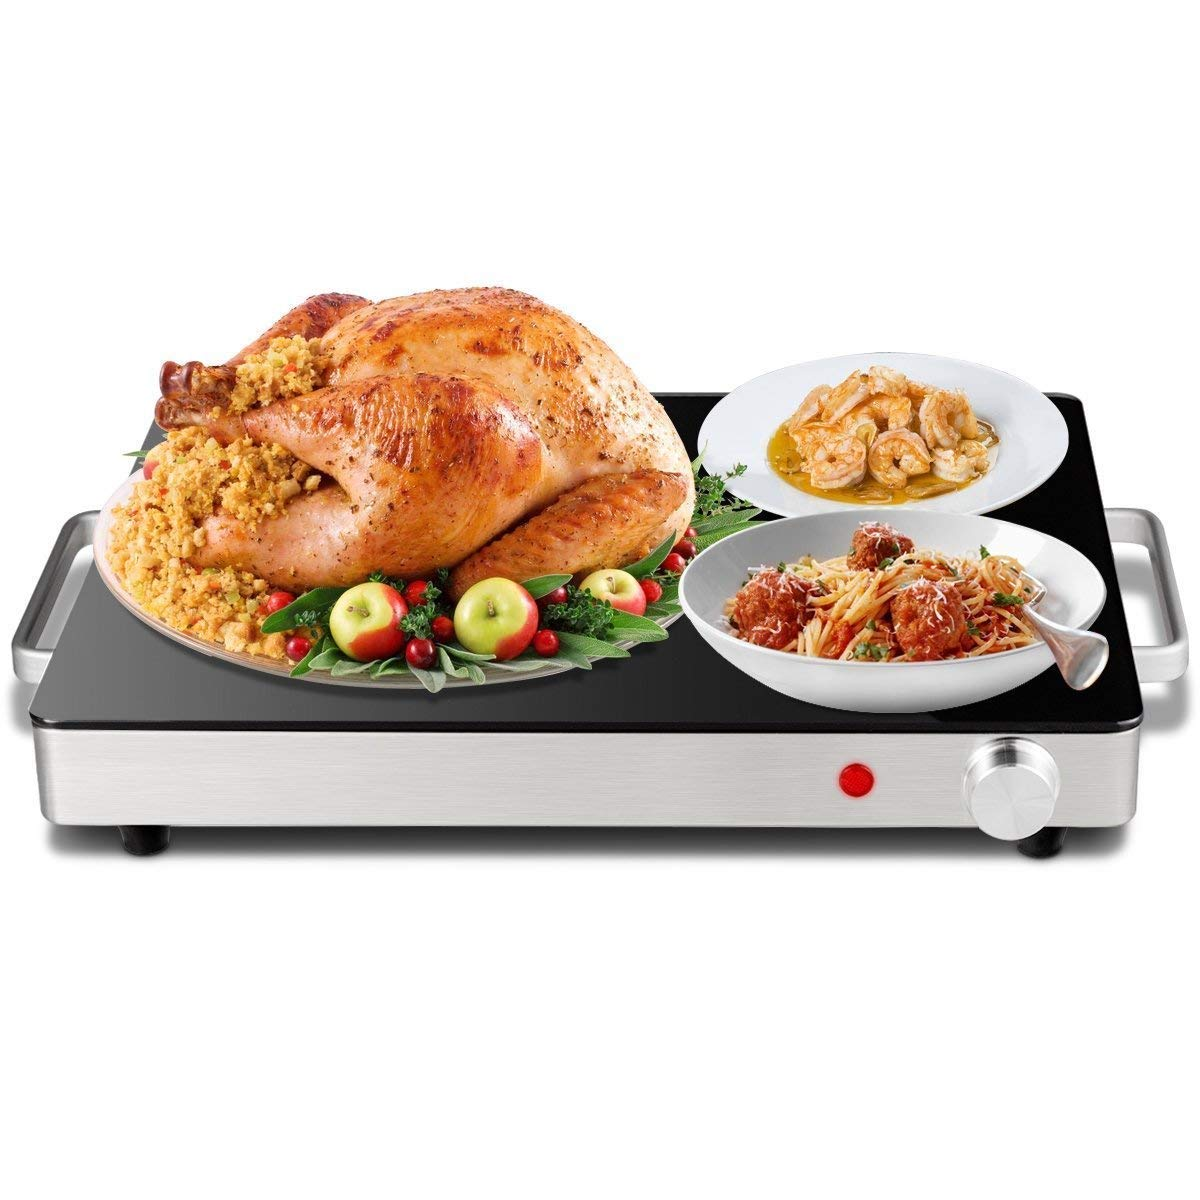 Giantex Warming Tray with Adjustable Temperature Control Perfect For Buffets, Restaurants and Home Dinners by Giantex (Image #2)